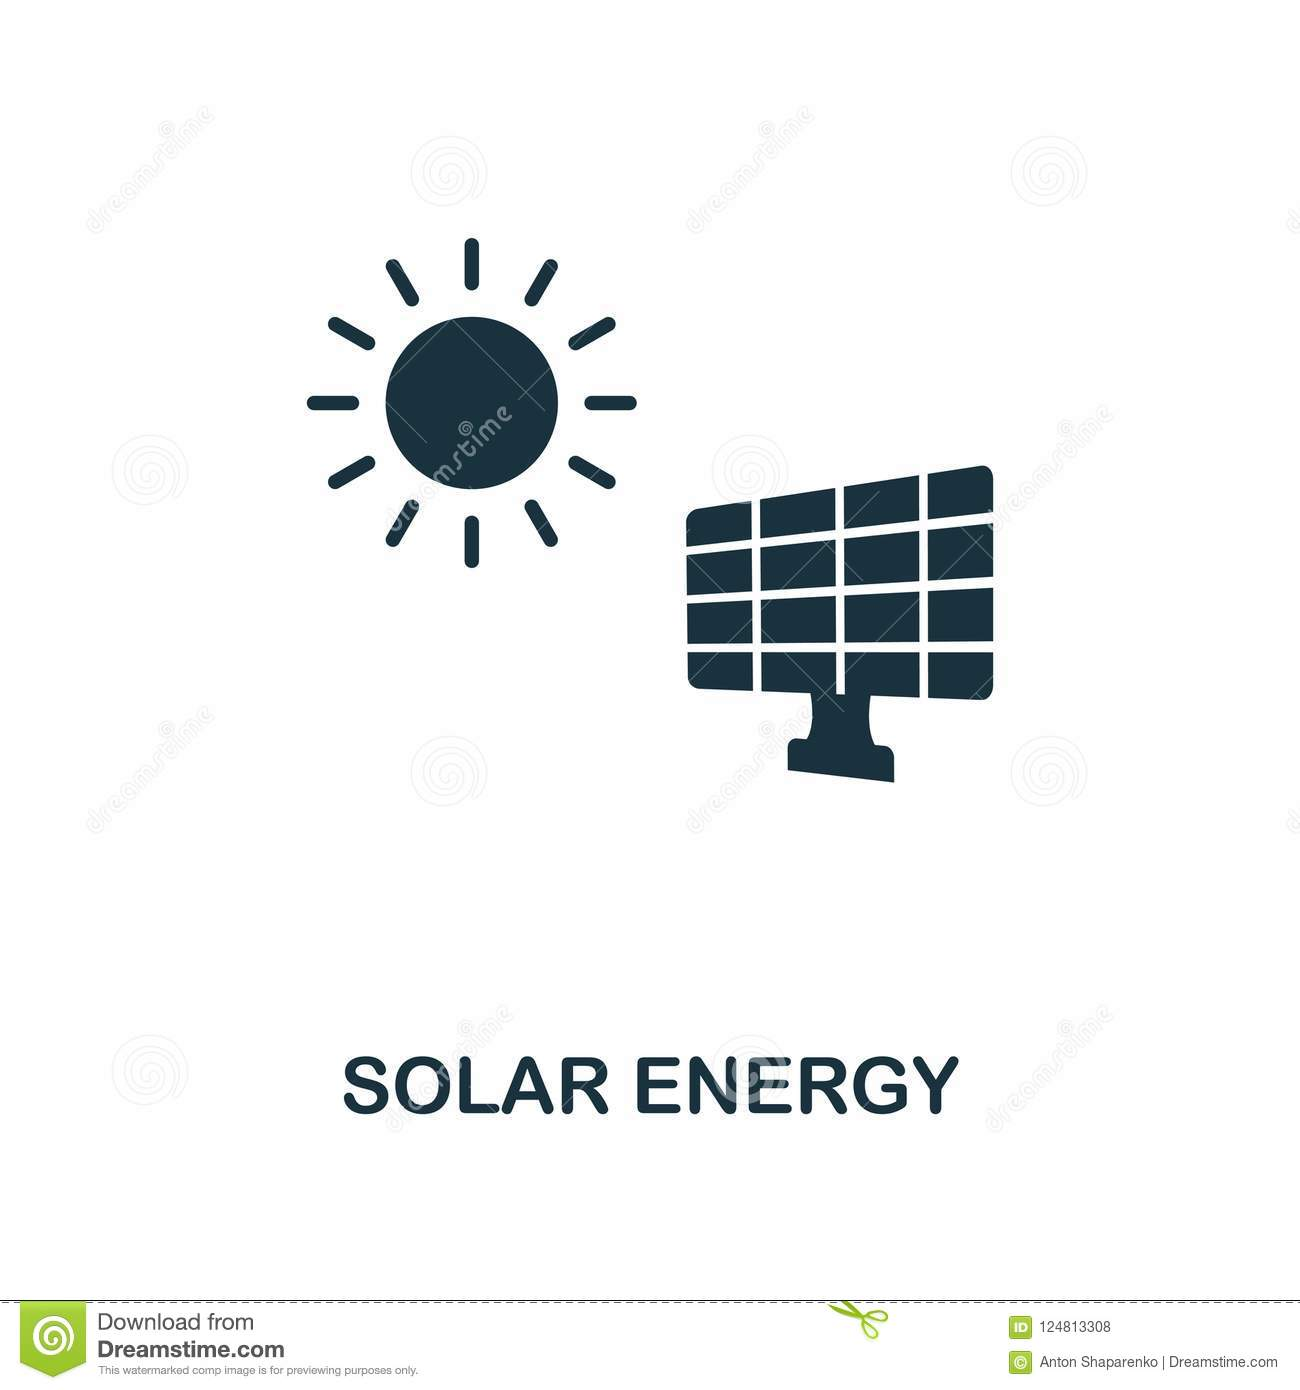 Solar Energy Icon Monochrome Style Design From Power And Energy Icon Collection Ui Pixel Perfect Simple Pictogram Solar Energy Stock Illustration Illustration Of Illustration Alternative 124813308